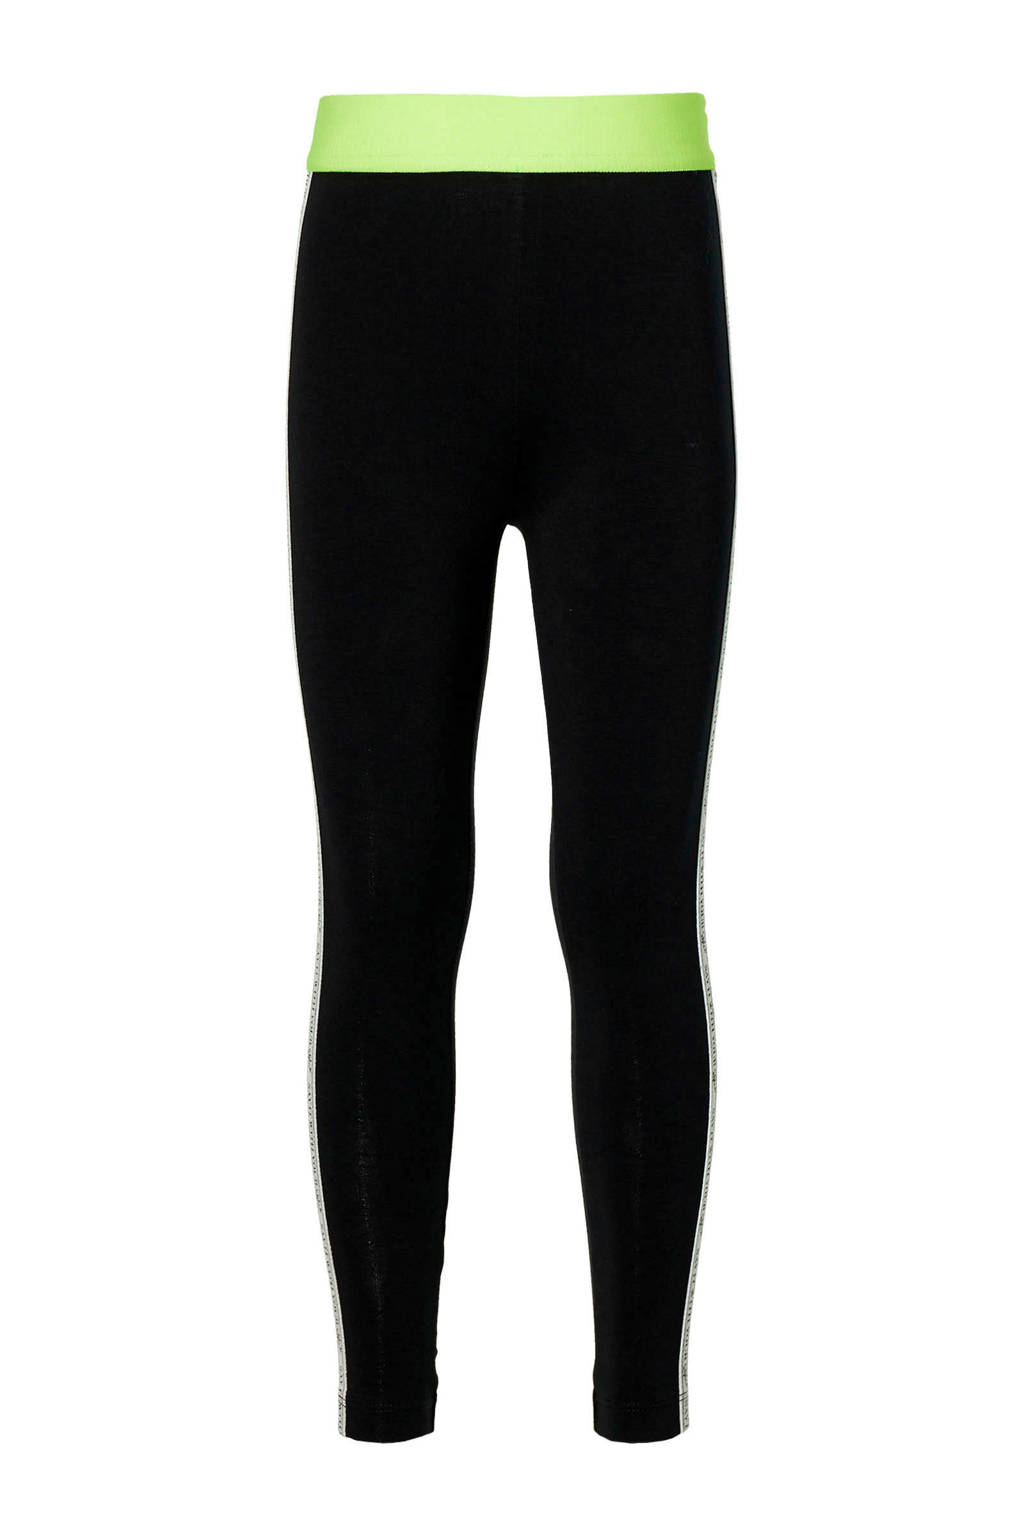 Quapi Girls regular fit legging Destiny met zijstreep zwart/geel, Zwart/geel